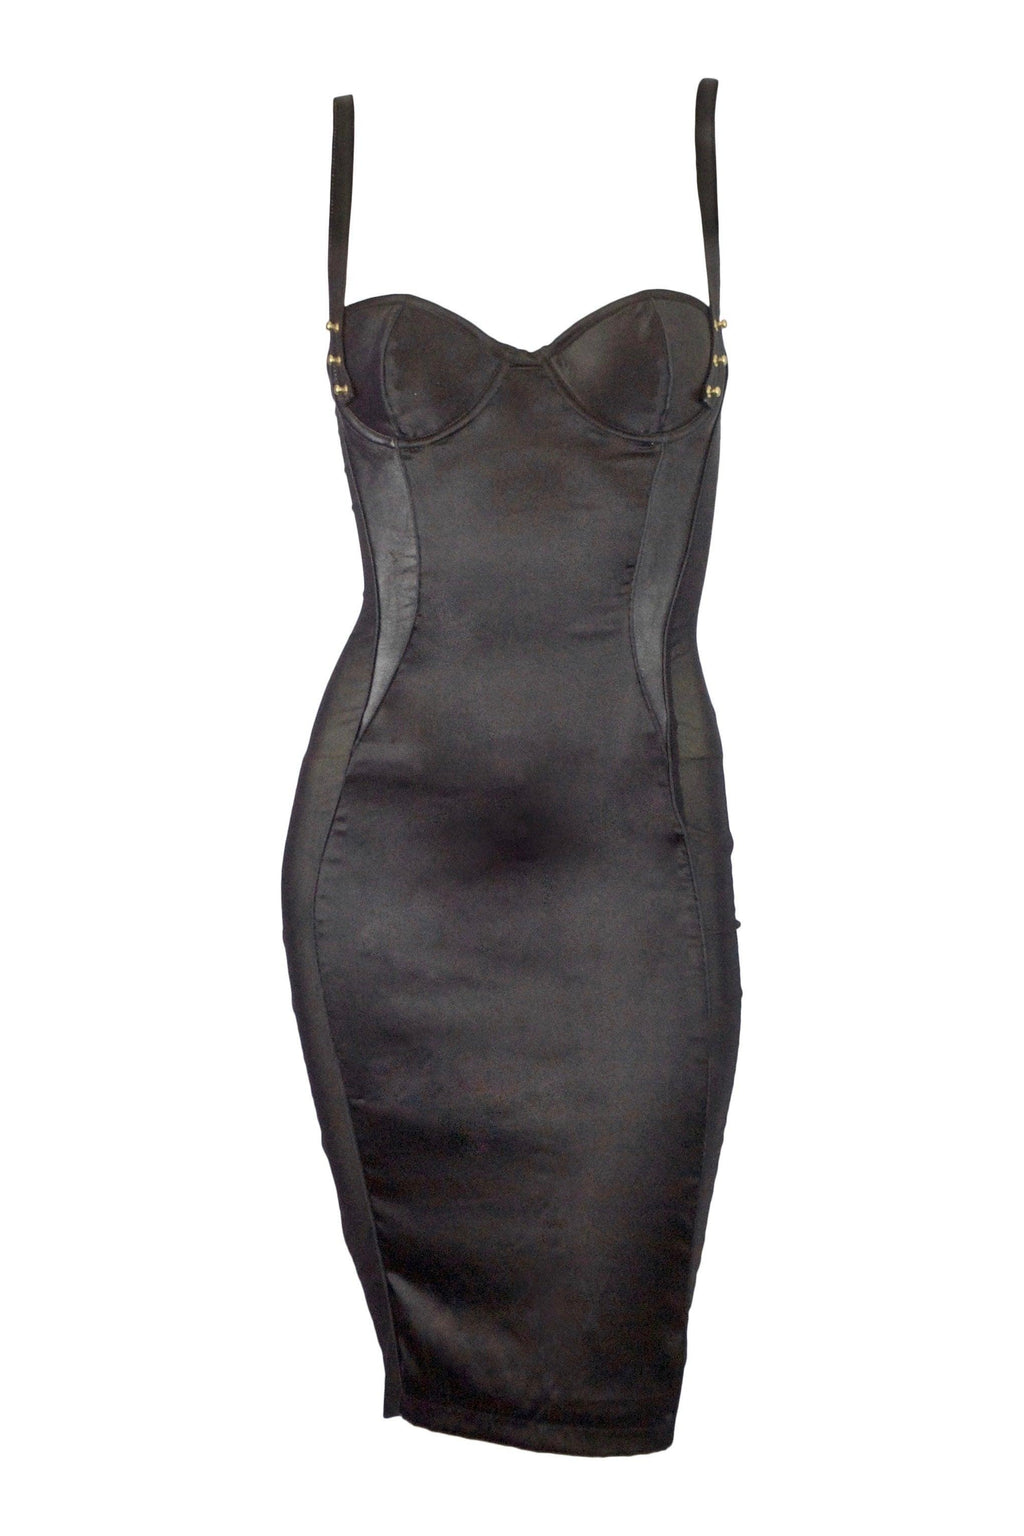 lola 'n' leather silk contour corset back dress